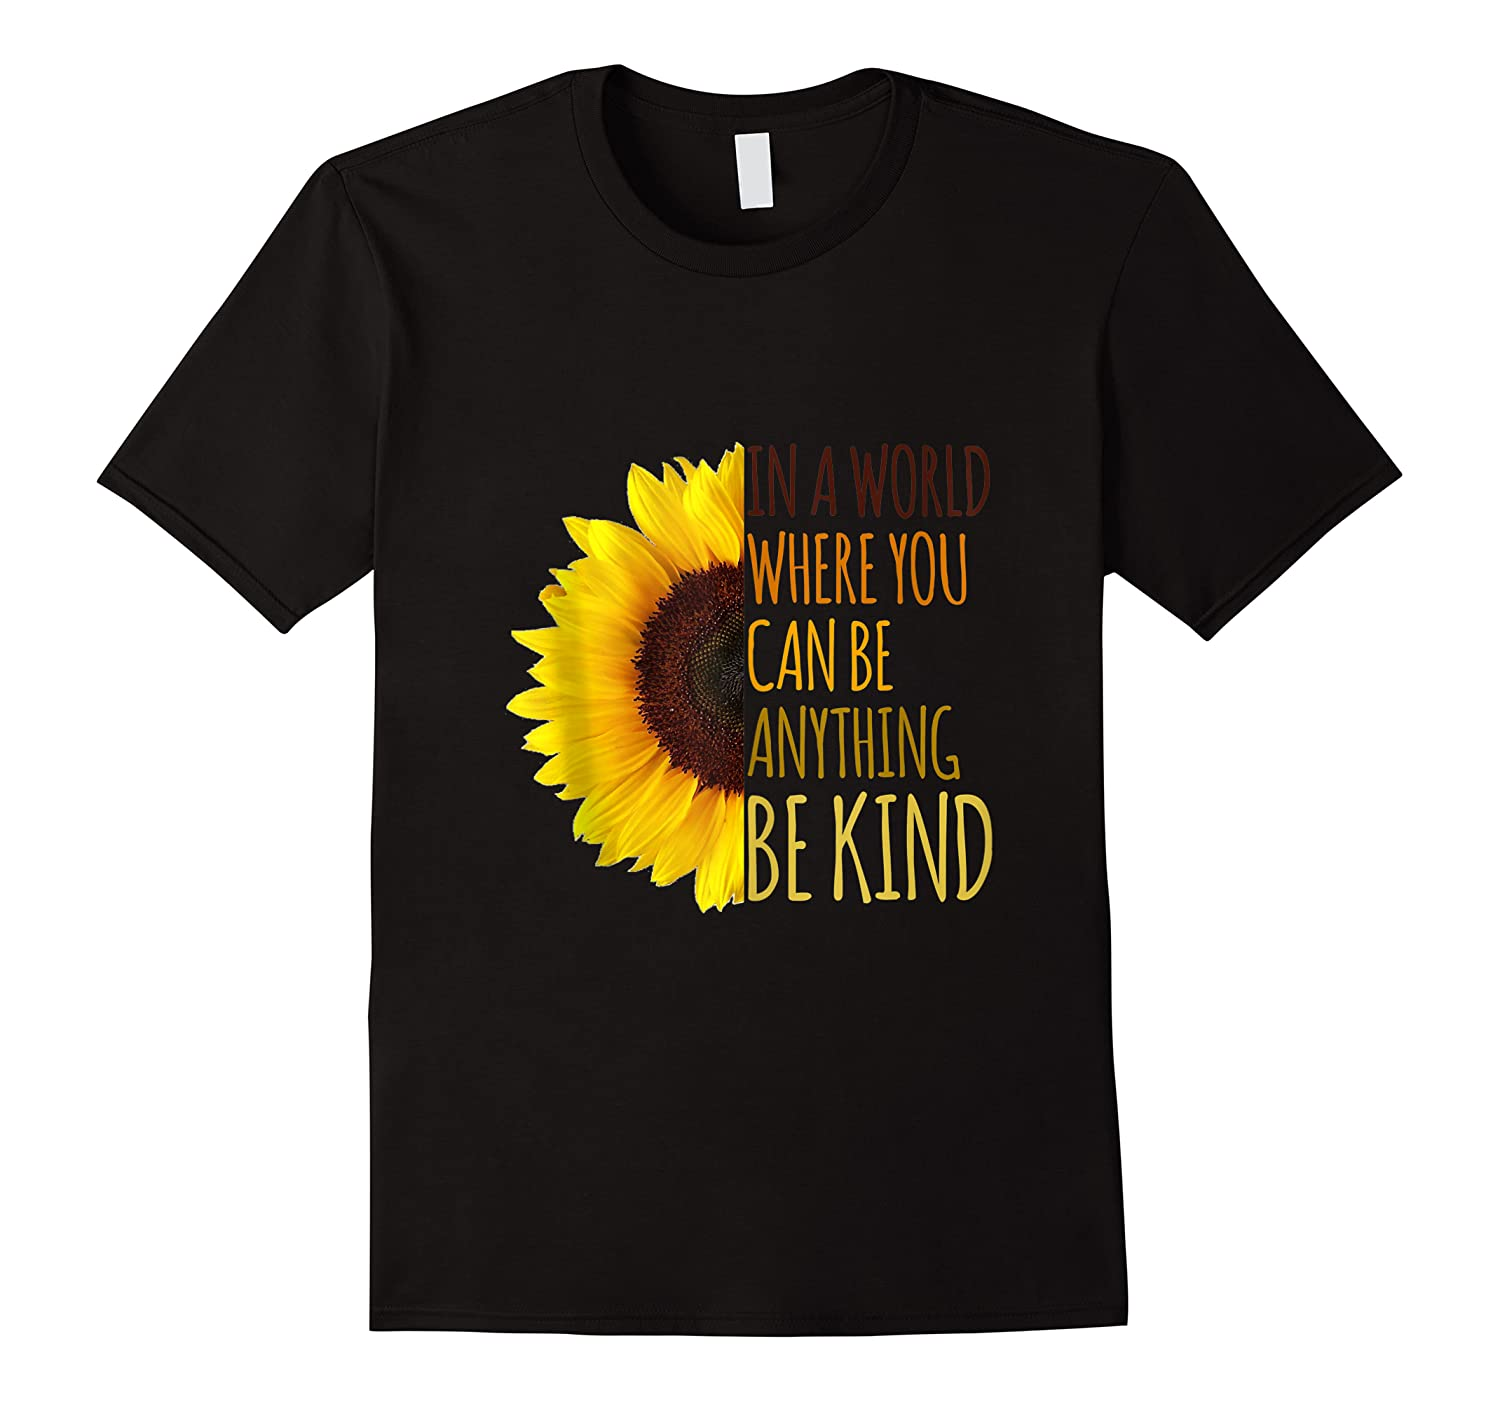 In A World Where You Can Be Anything Be Kind, Kindness Shirts